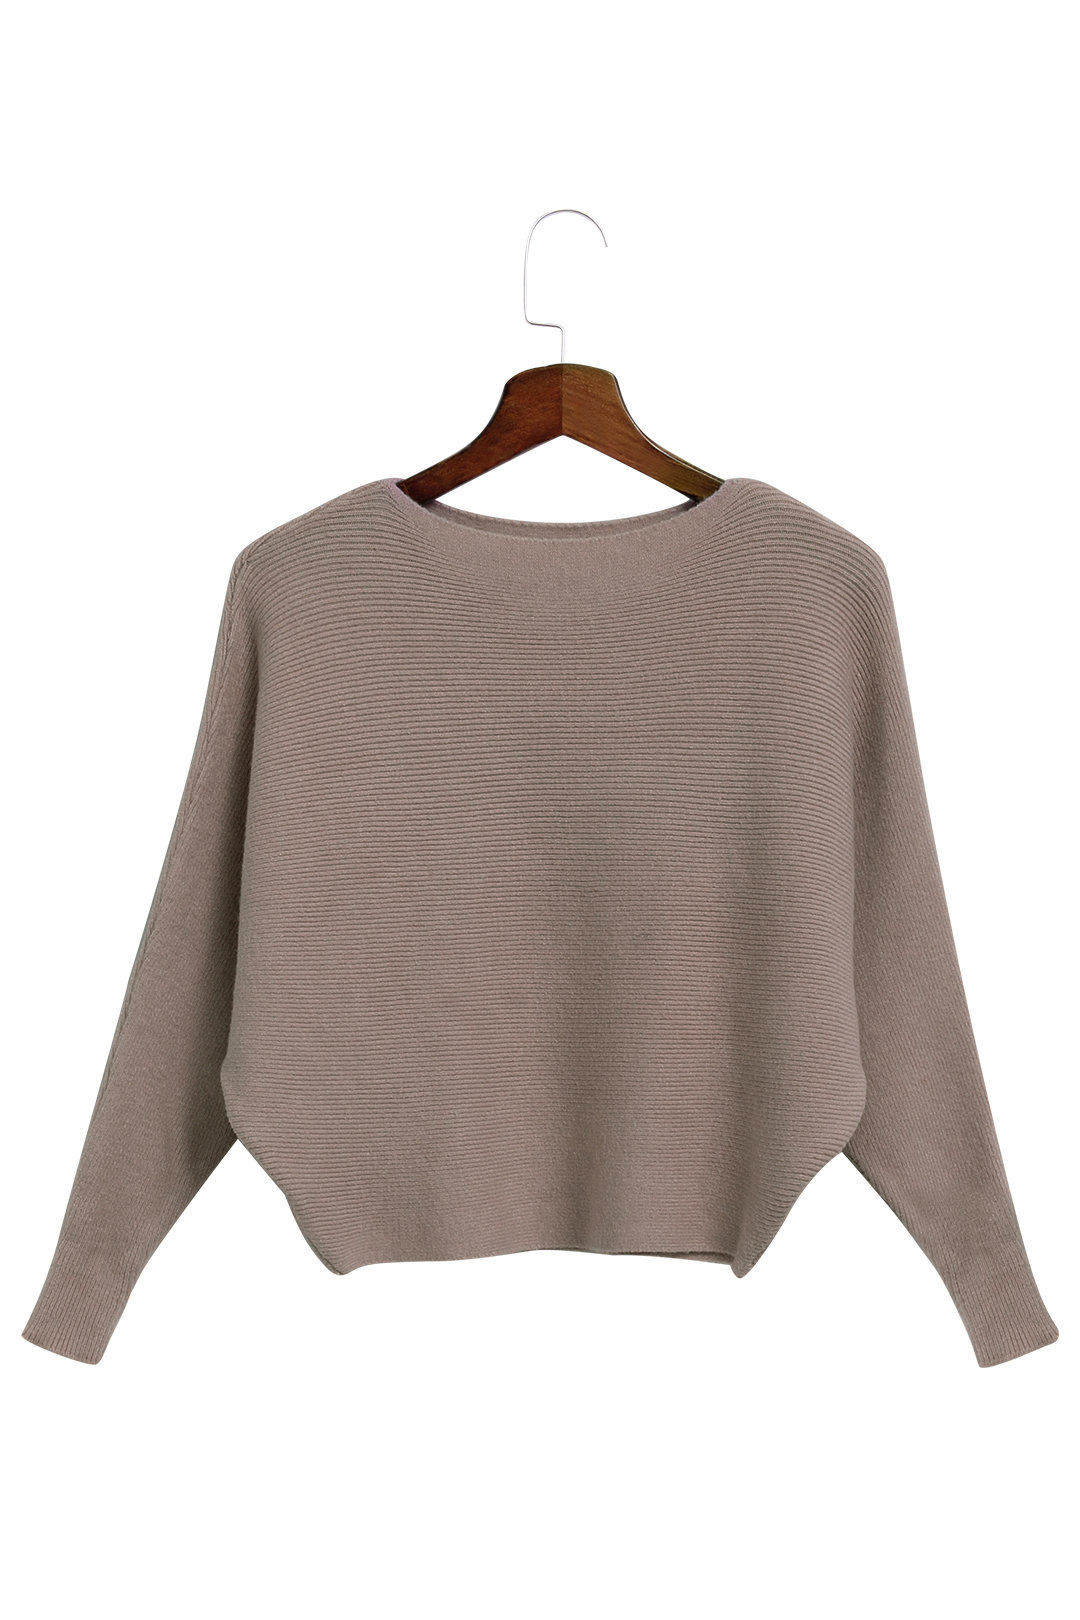 Khaki Sexy Pullover Bat Sleeves Loose Jumper